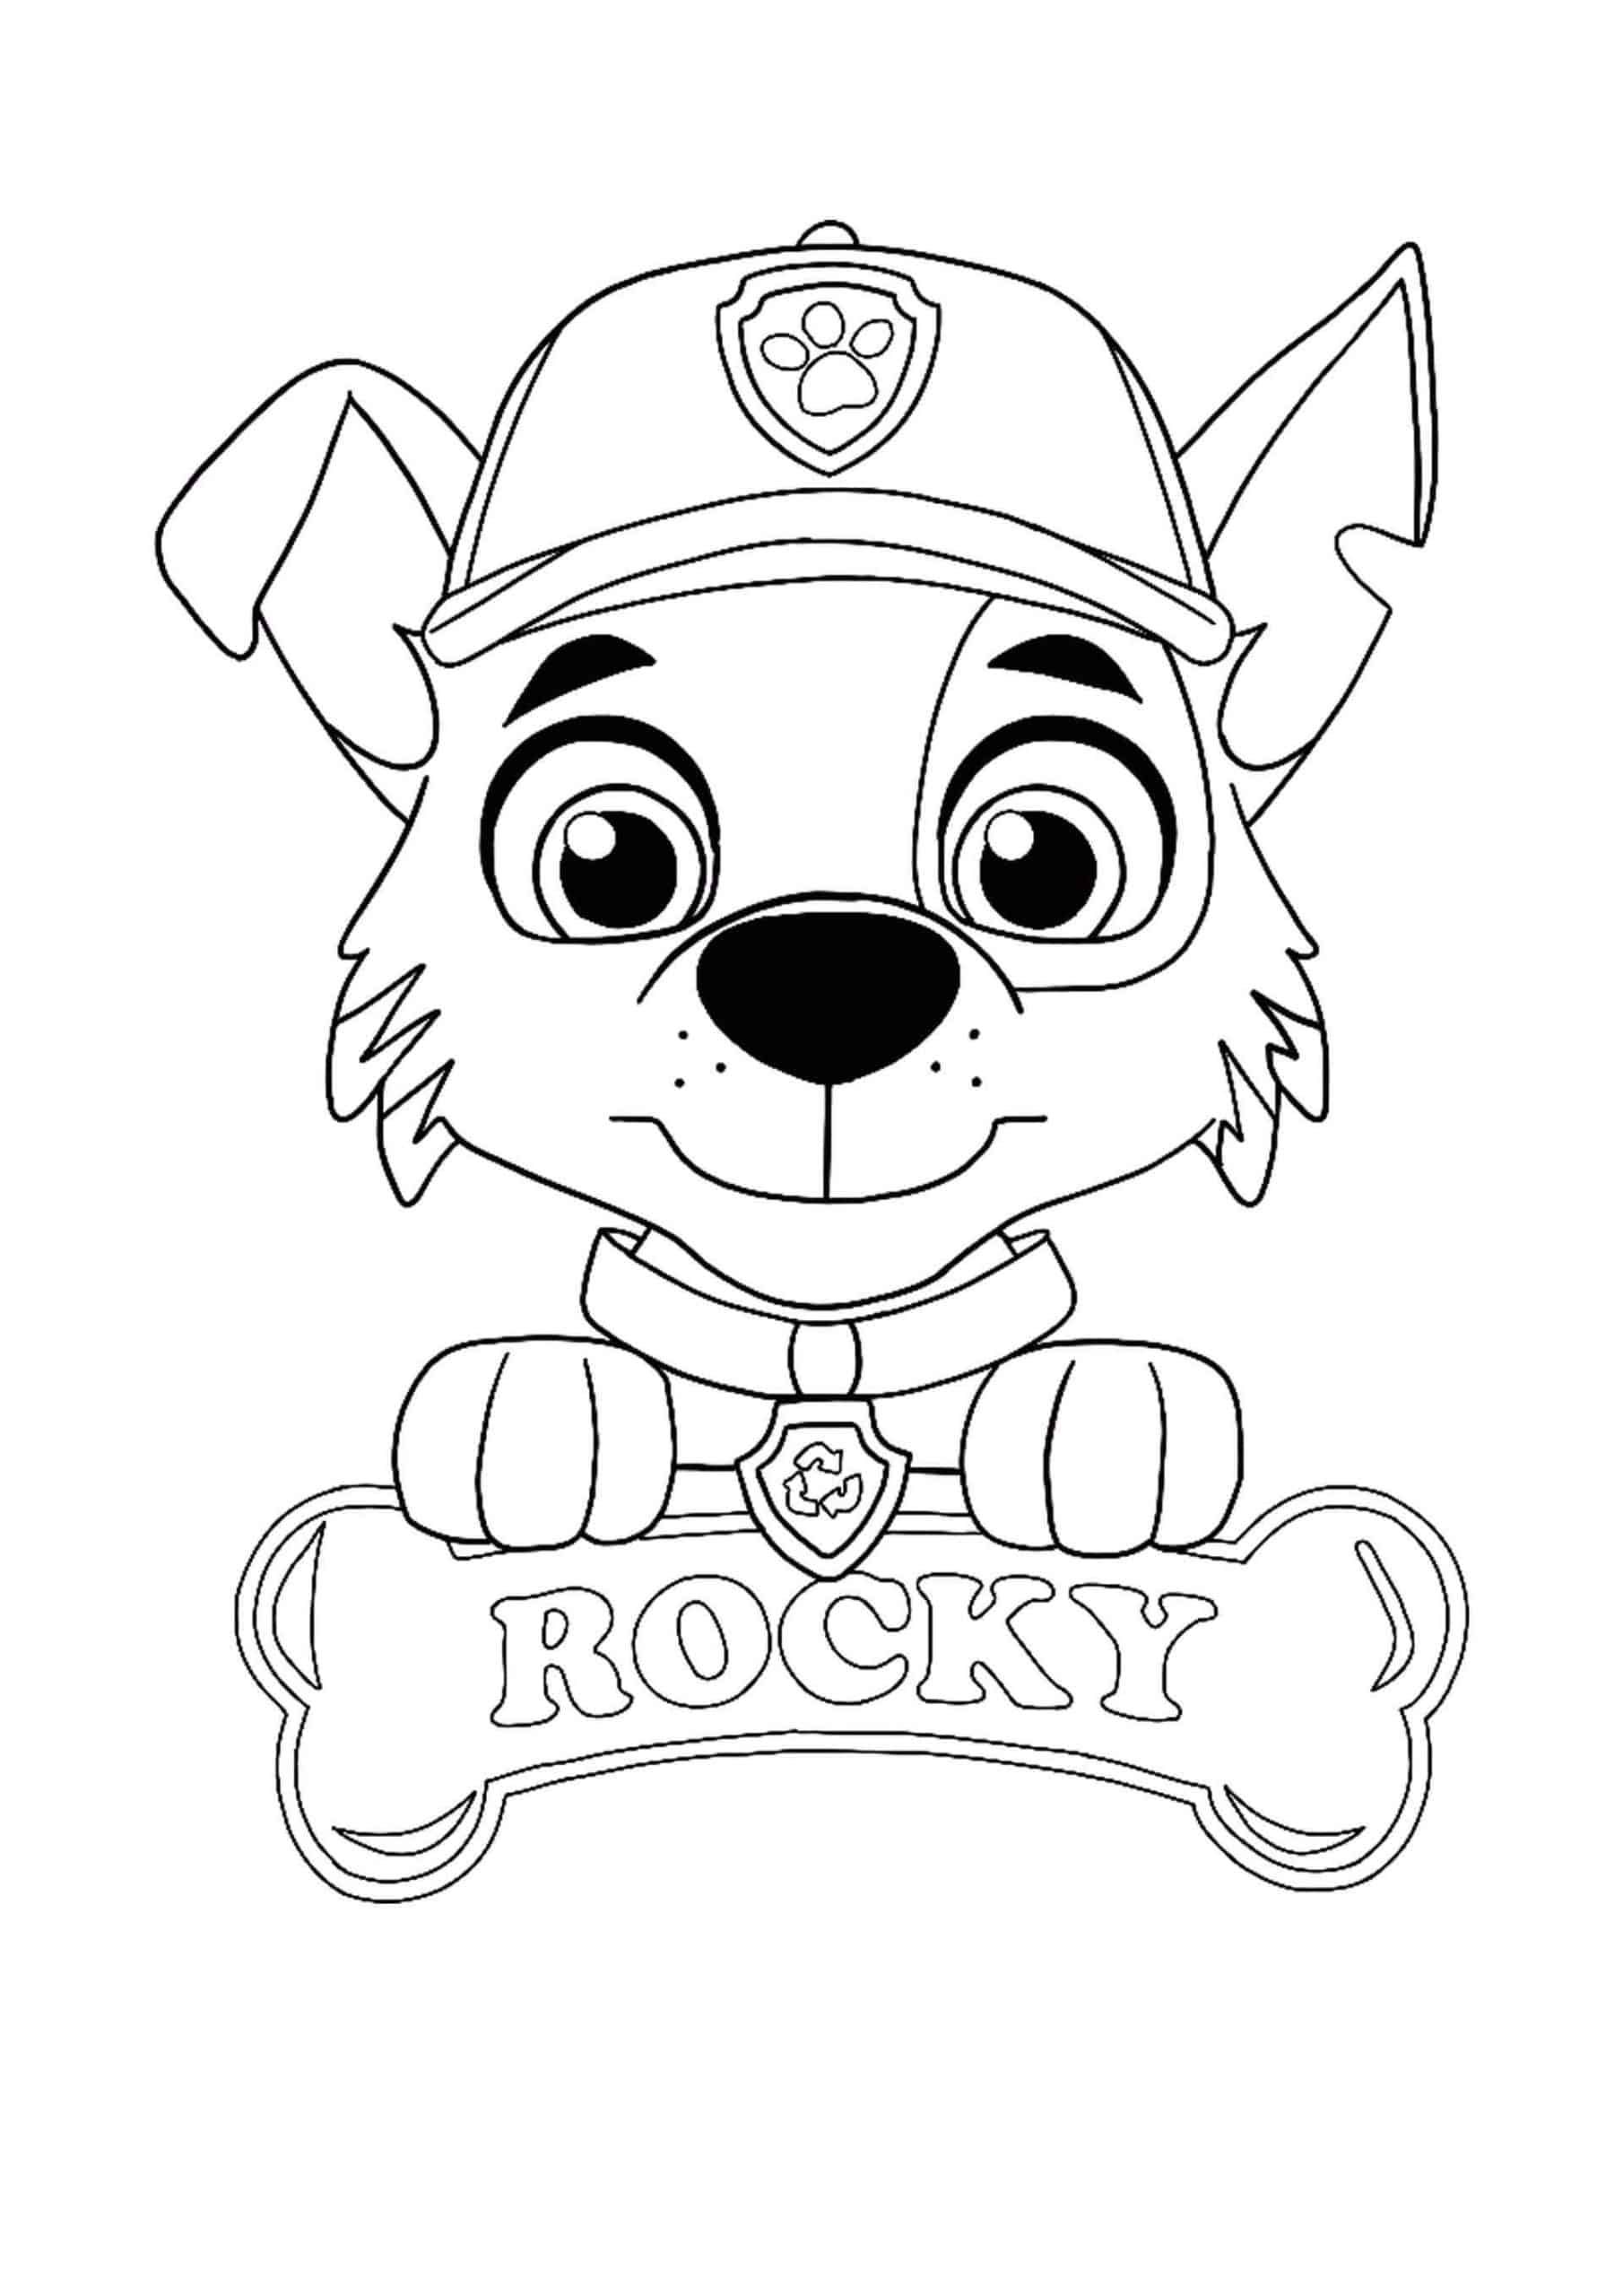 Paw Patrol Rocky Coloring Page Paw Patrol Coloring Unicorn Coloring Pages Free Printable Coloring Sheets